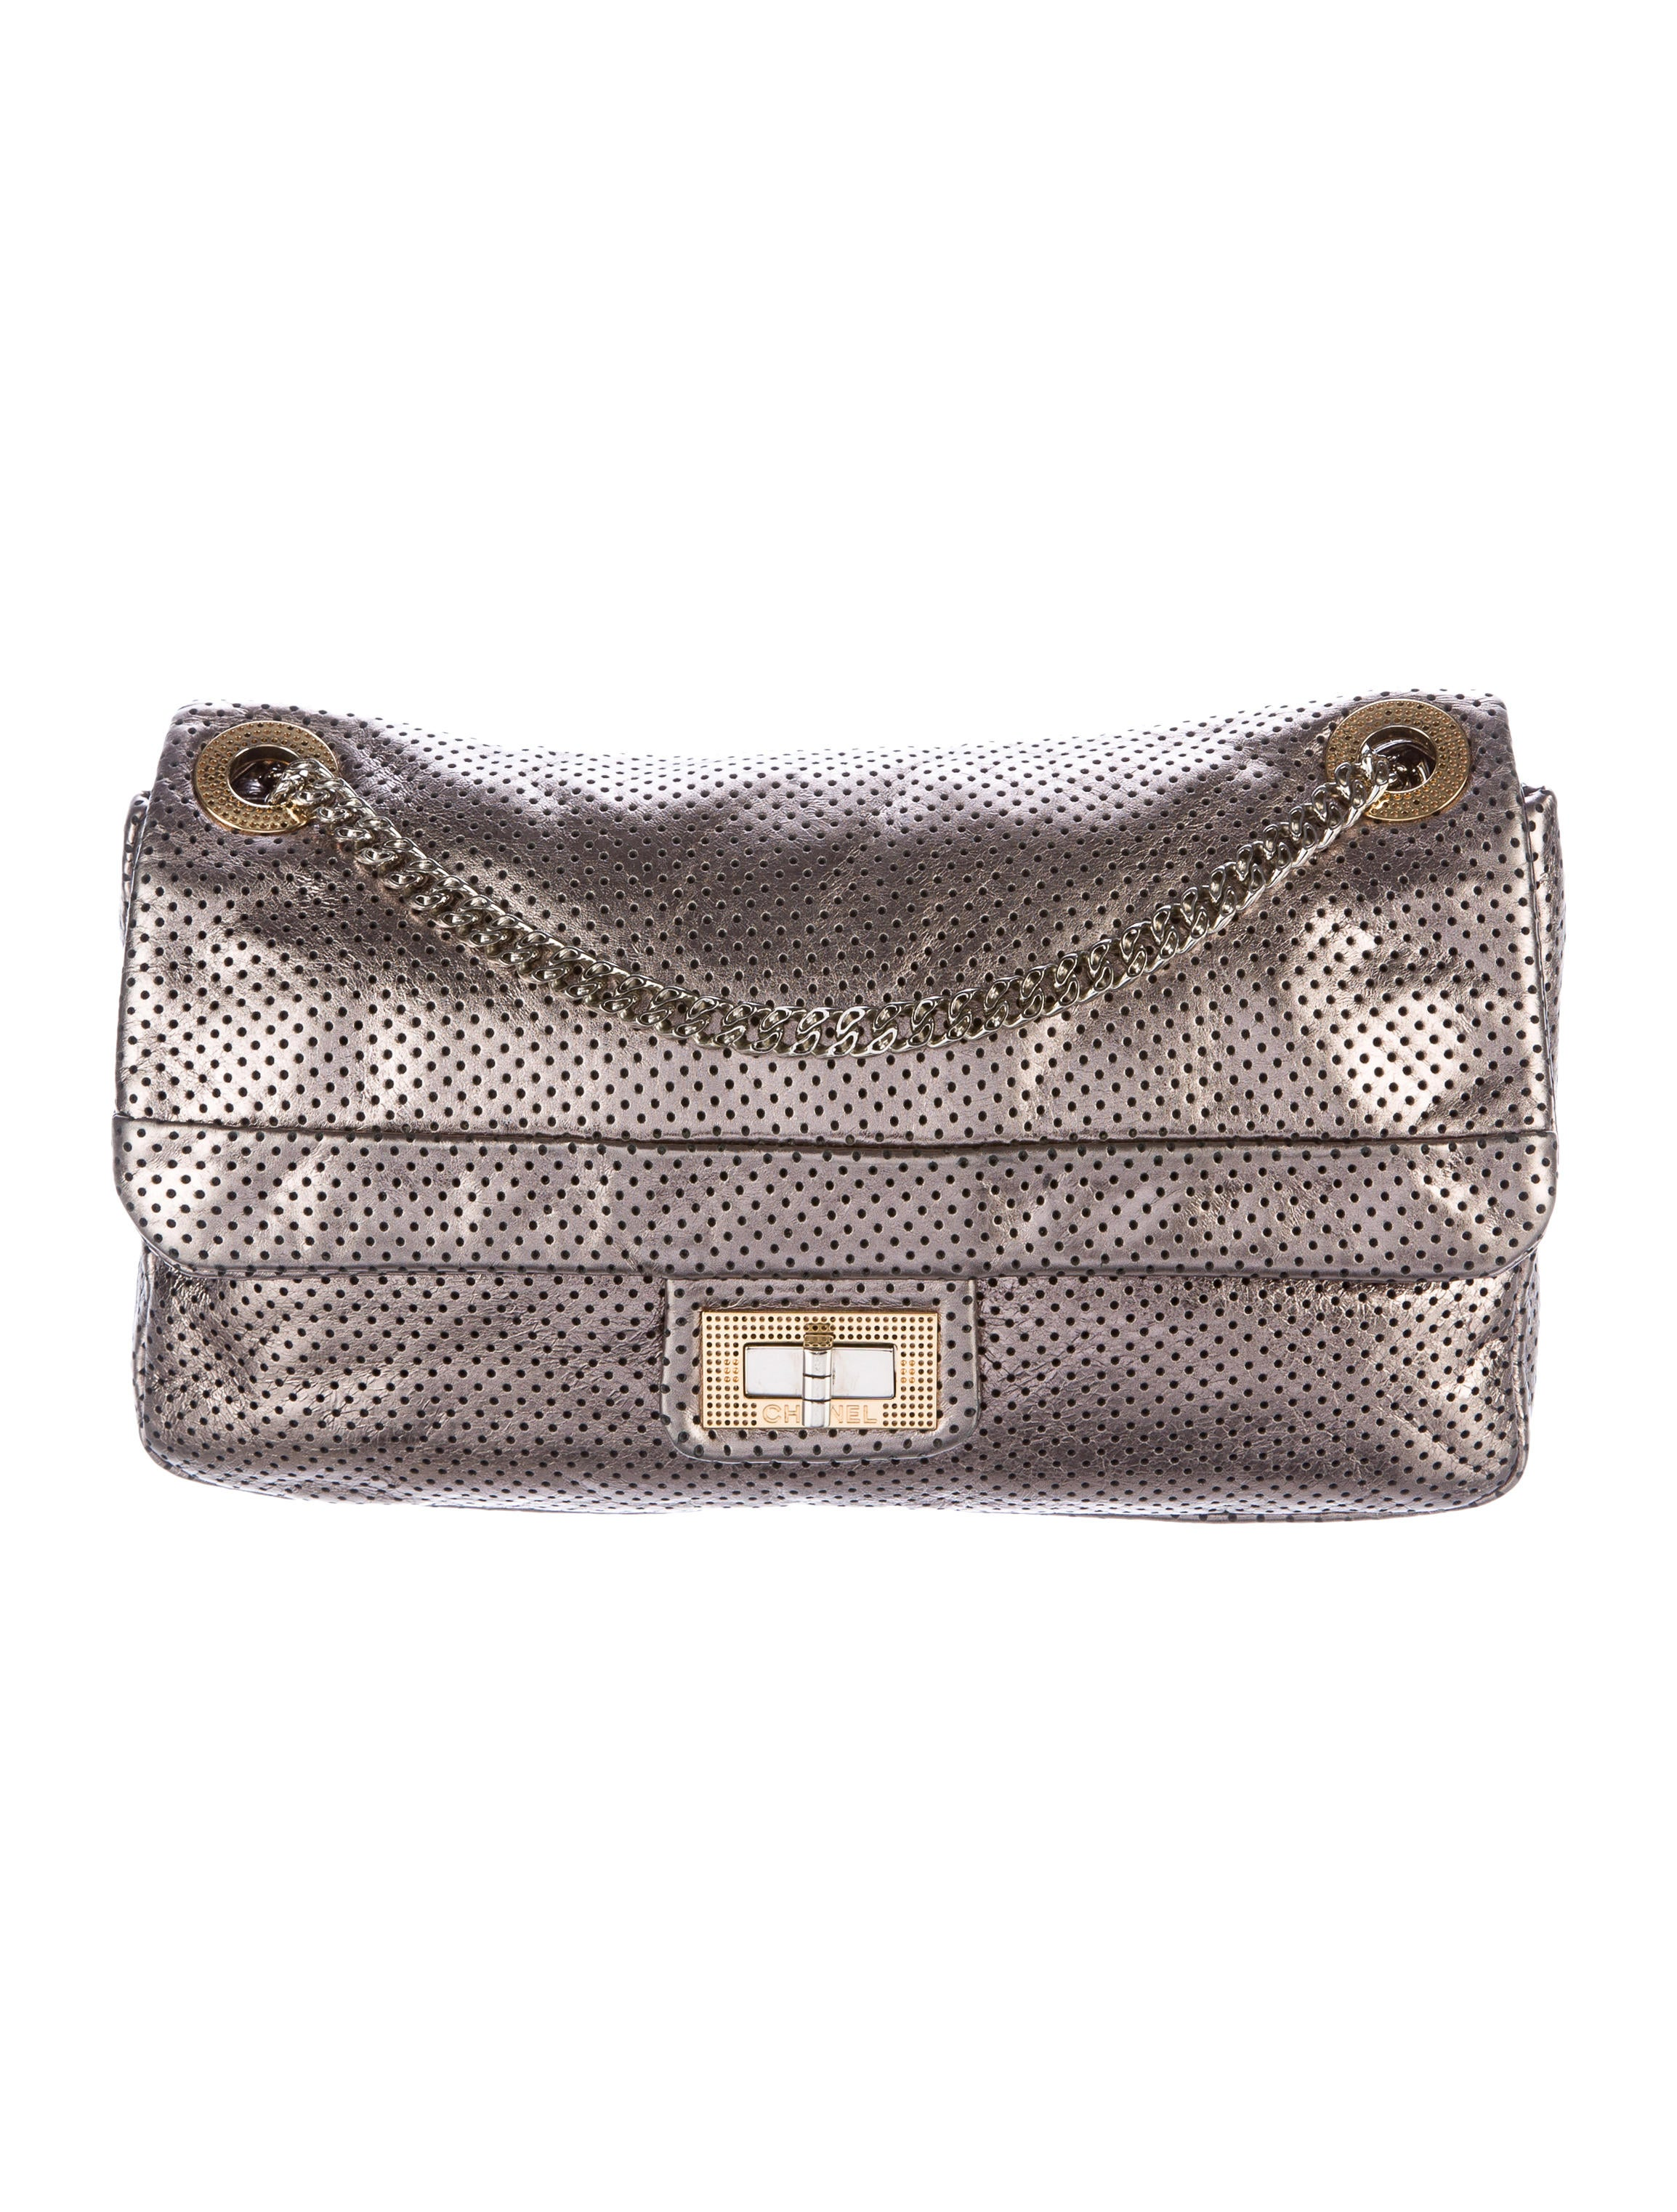 Chanel Perforated Drill Flap Bag Handbags CHA162795  : CHA1627951enlarged from www.therealreal.com size 2308 x 3045 jpeg 670kB